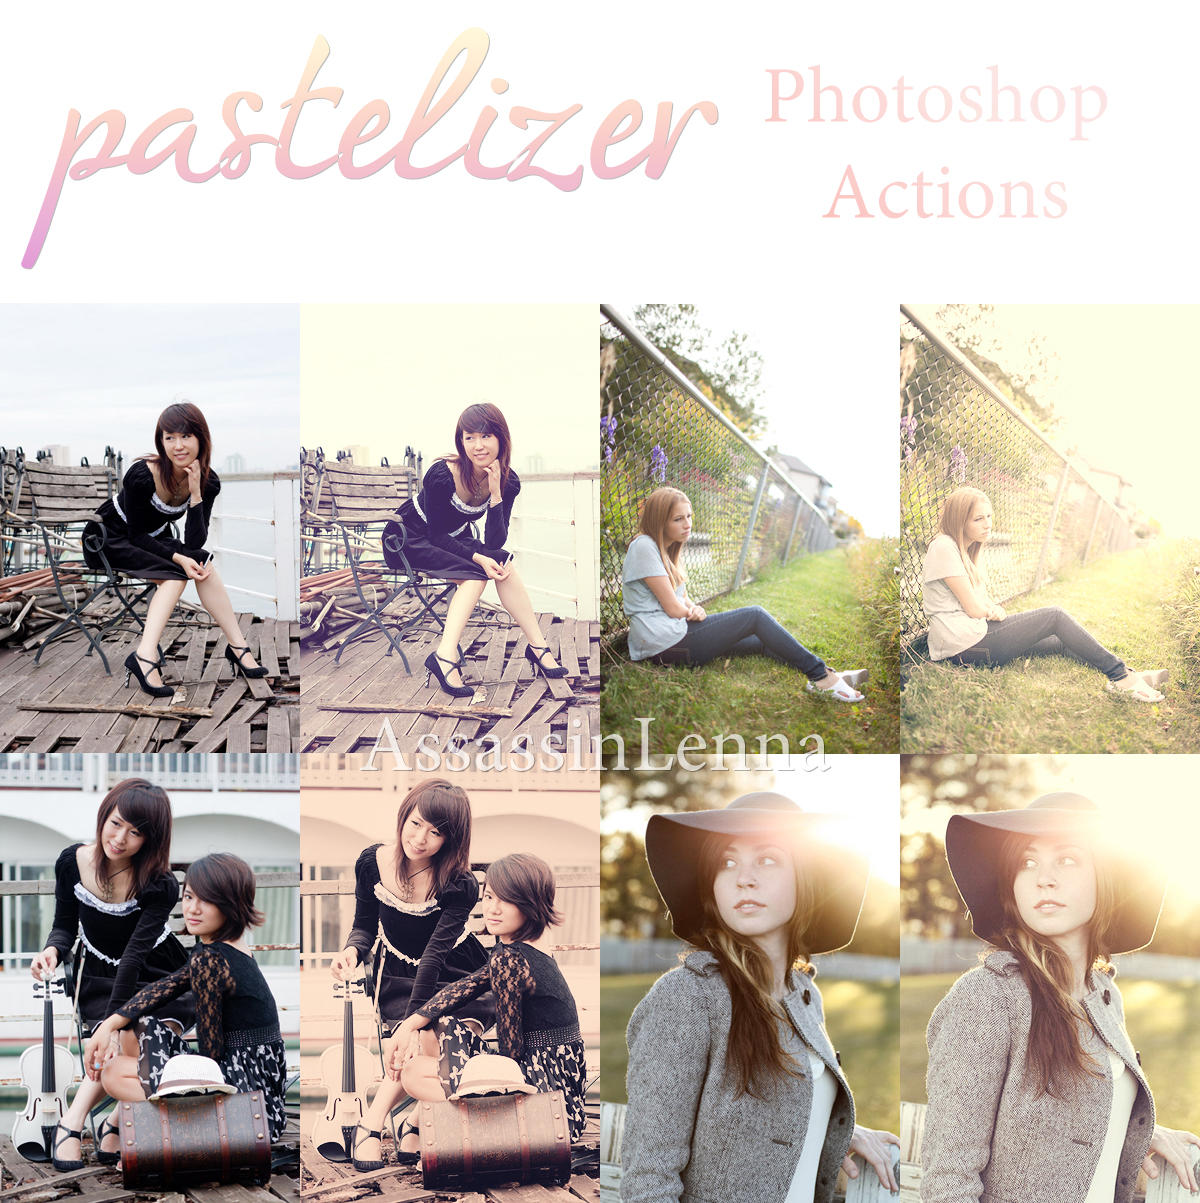 Pastelizer Photoshop Actions by AssassinLenna